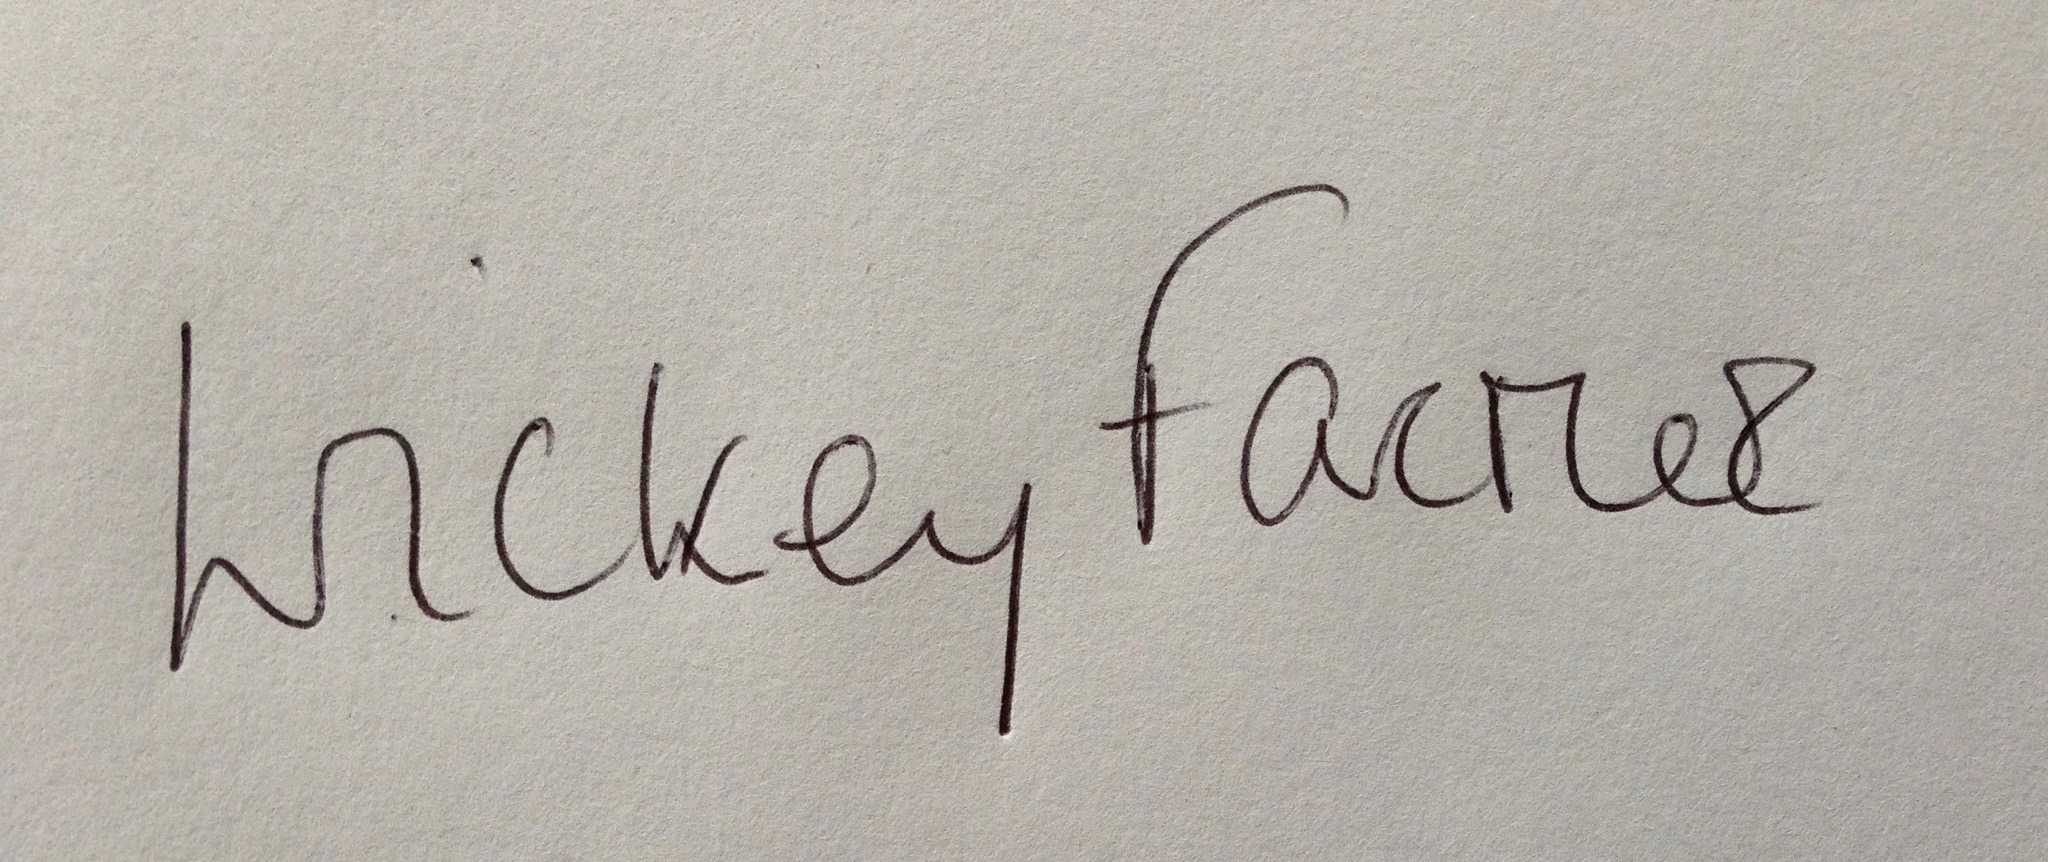 Wickey Farmer's Signature